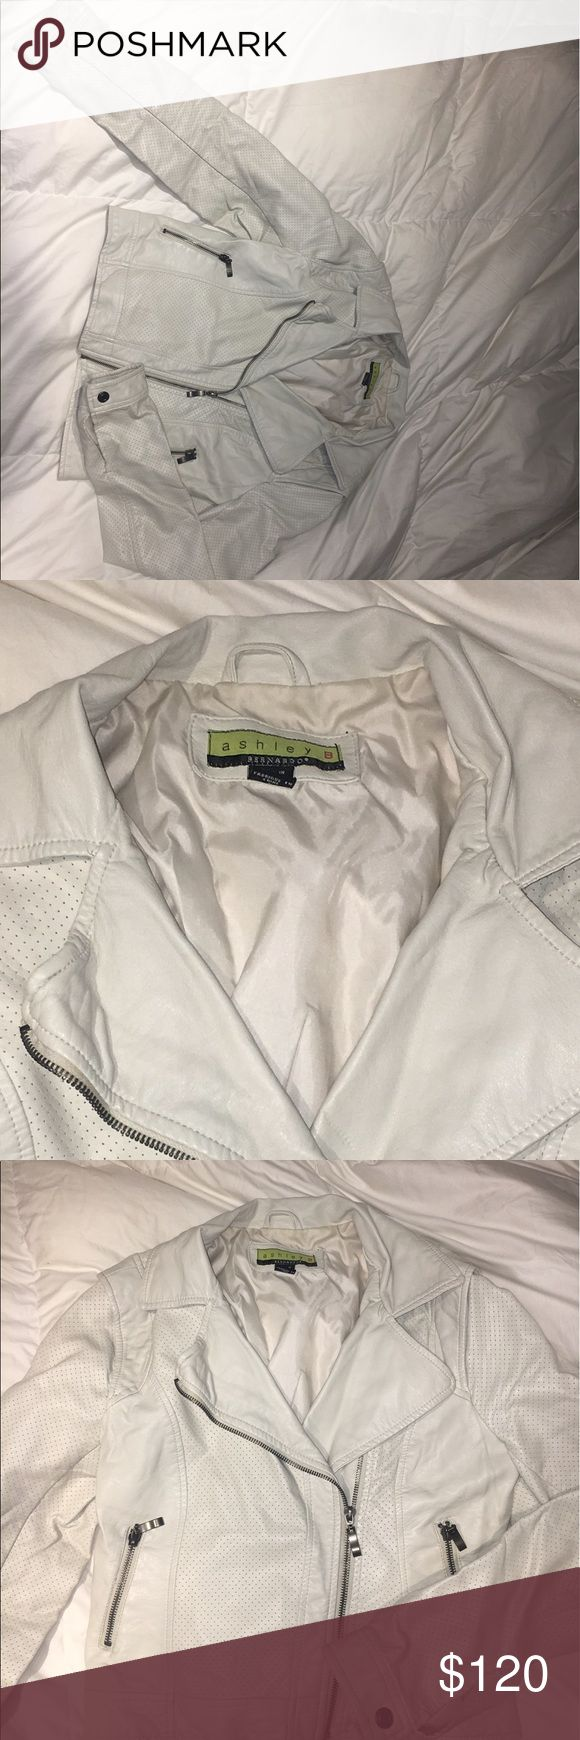 White leather jacket A lightly worn Bernardo leather jacket for sale because it is too small for me! I love it and hope someone else will enjoy it too. There is a slight tear in the back but can be easily fixed. Bernardo Jackets & Coats Utility Jackets